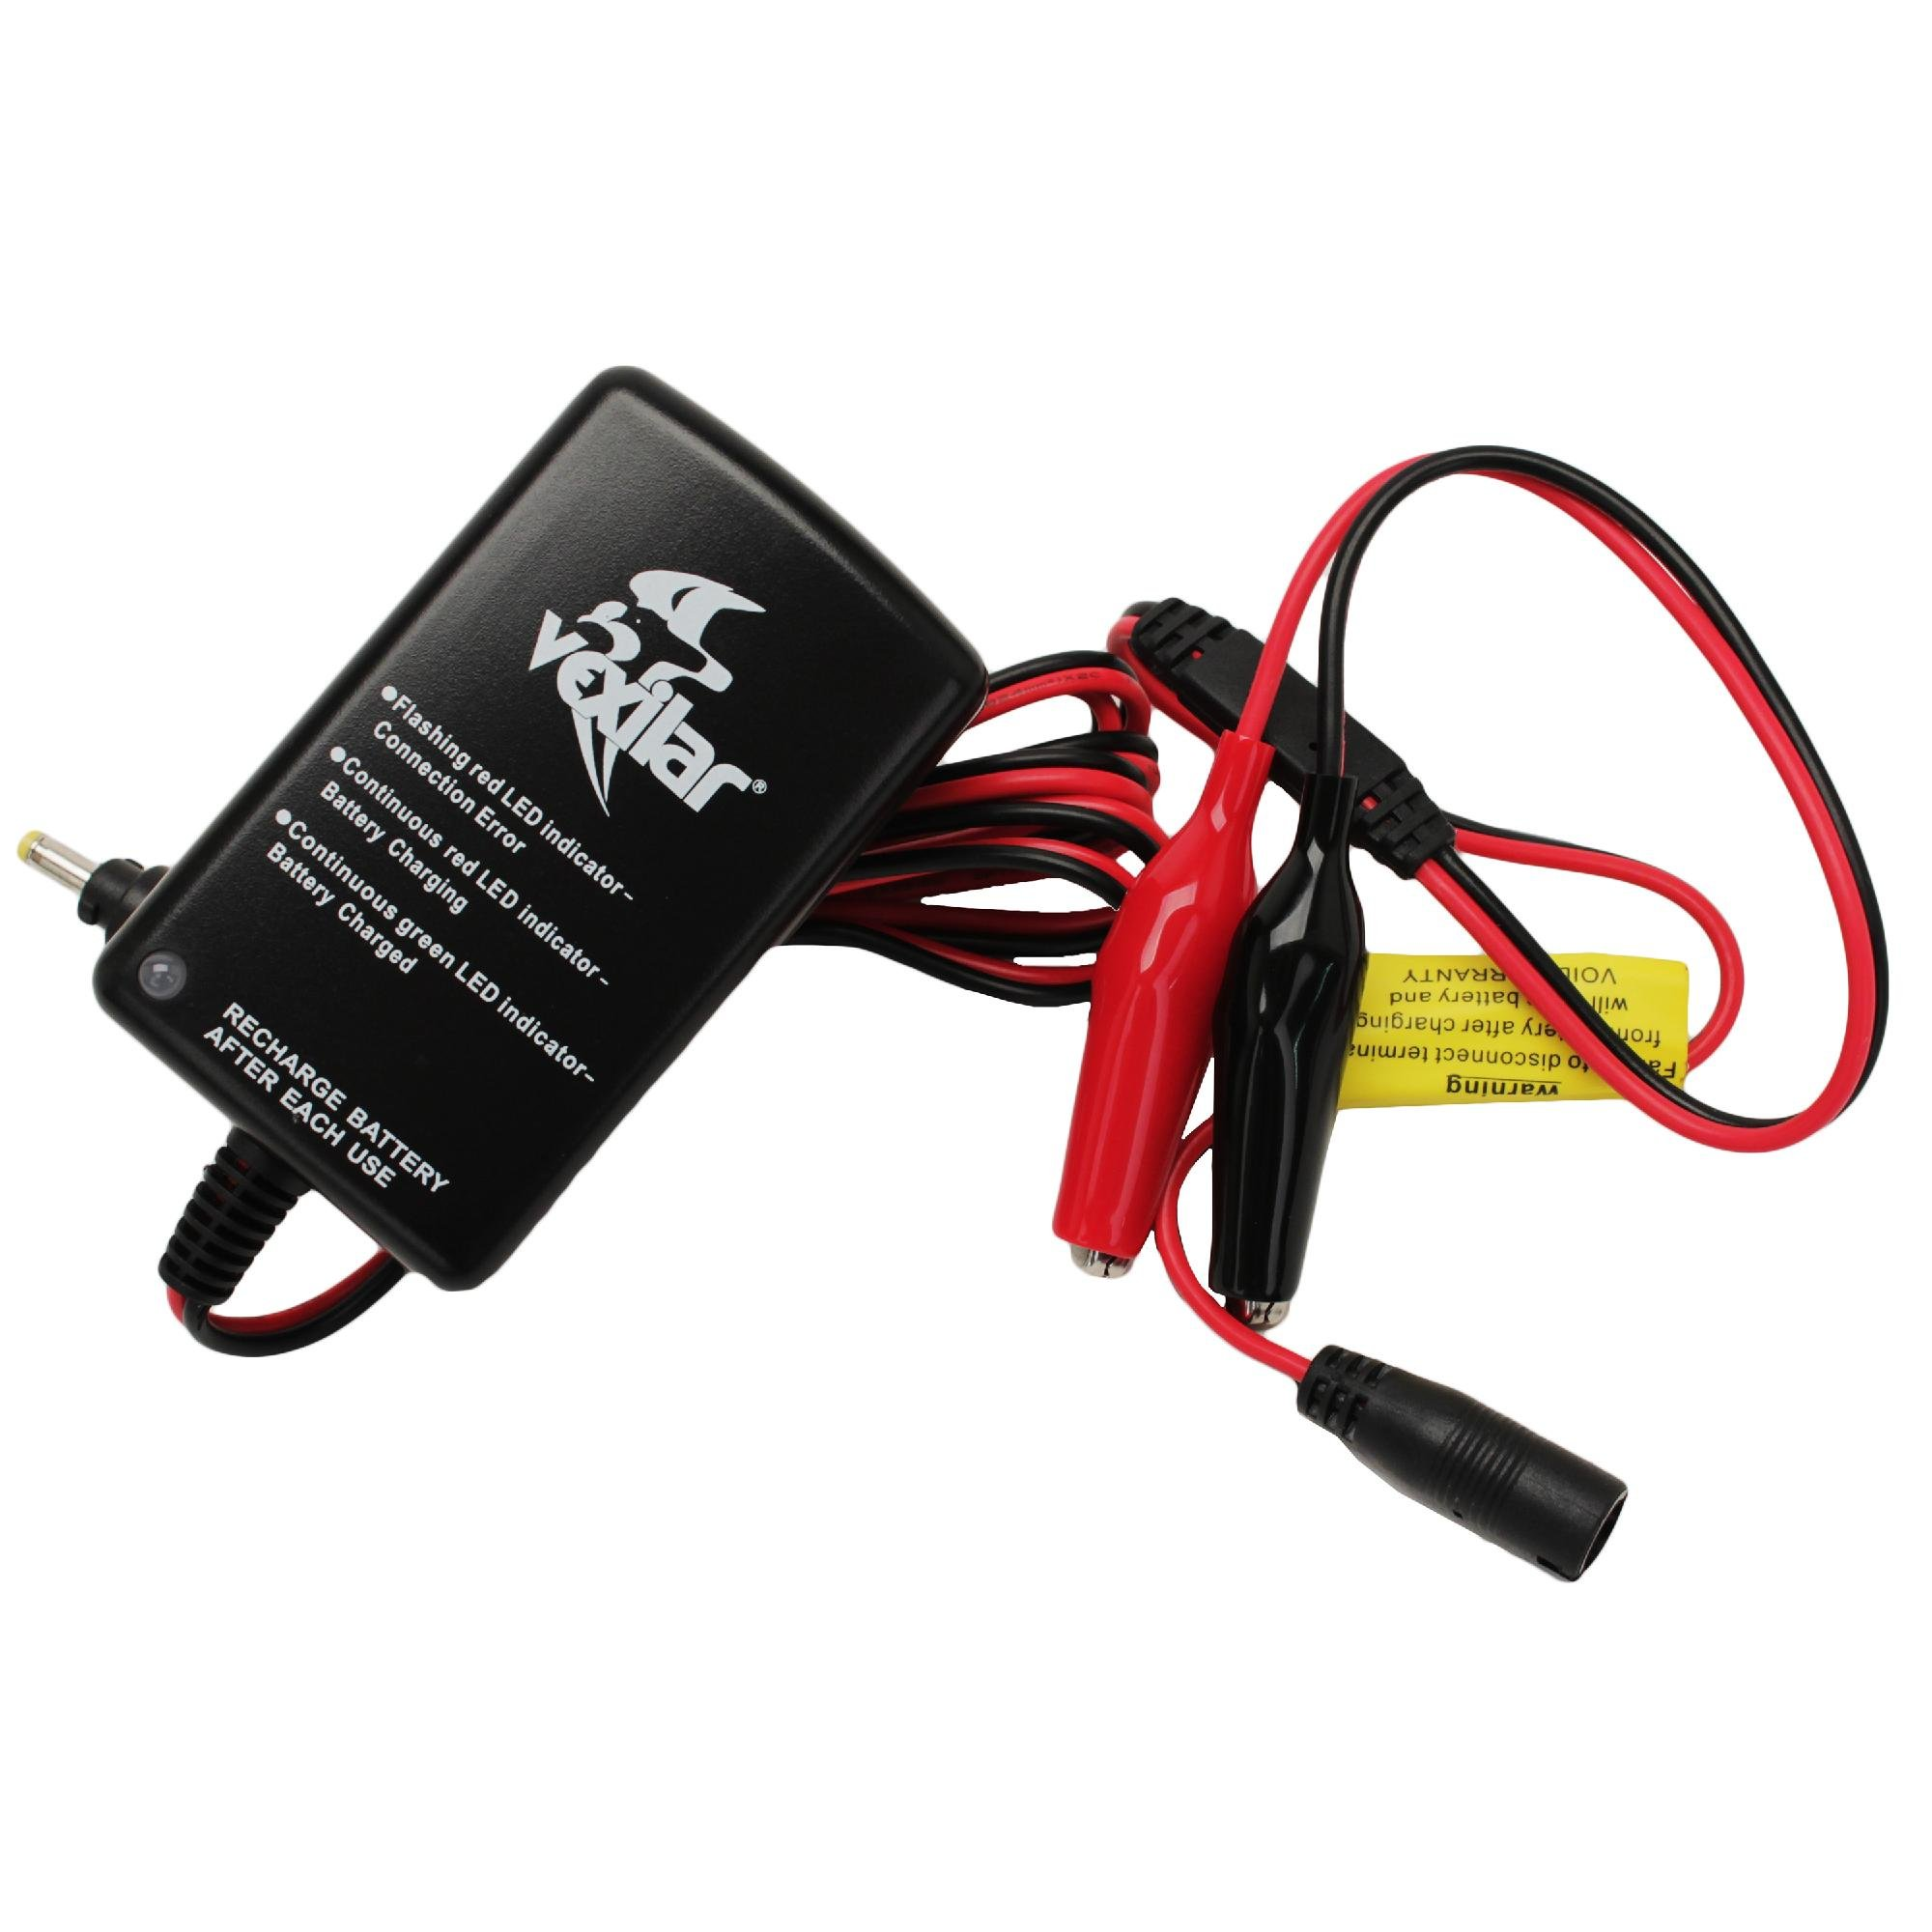 Vexilar's Best Auto Charger at 1,000 mA by Unknown